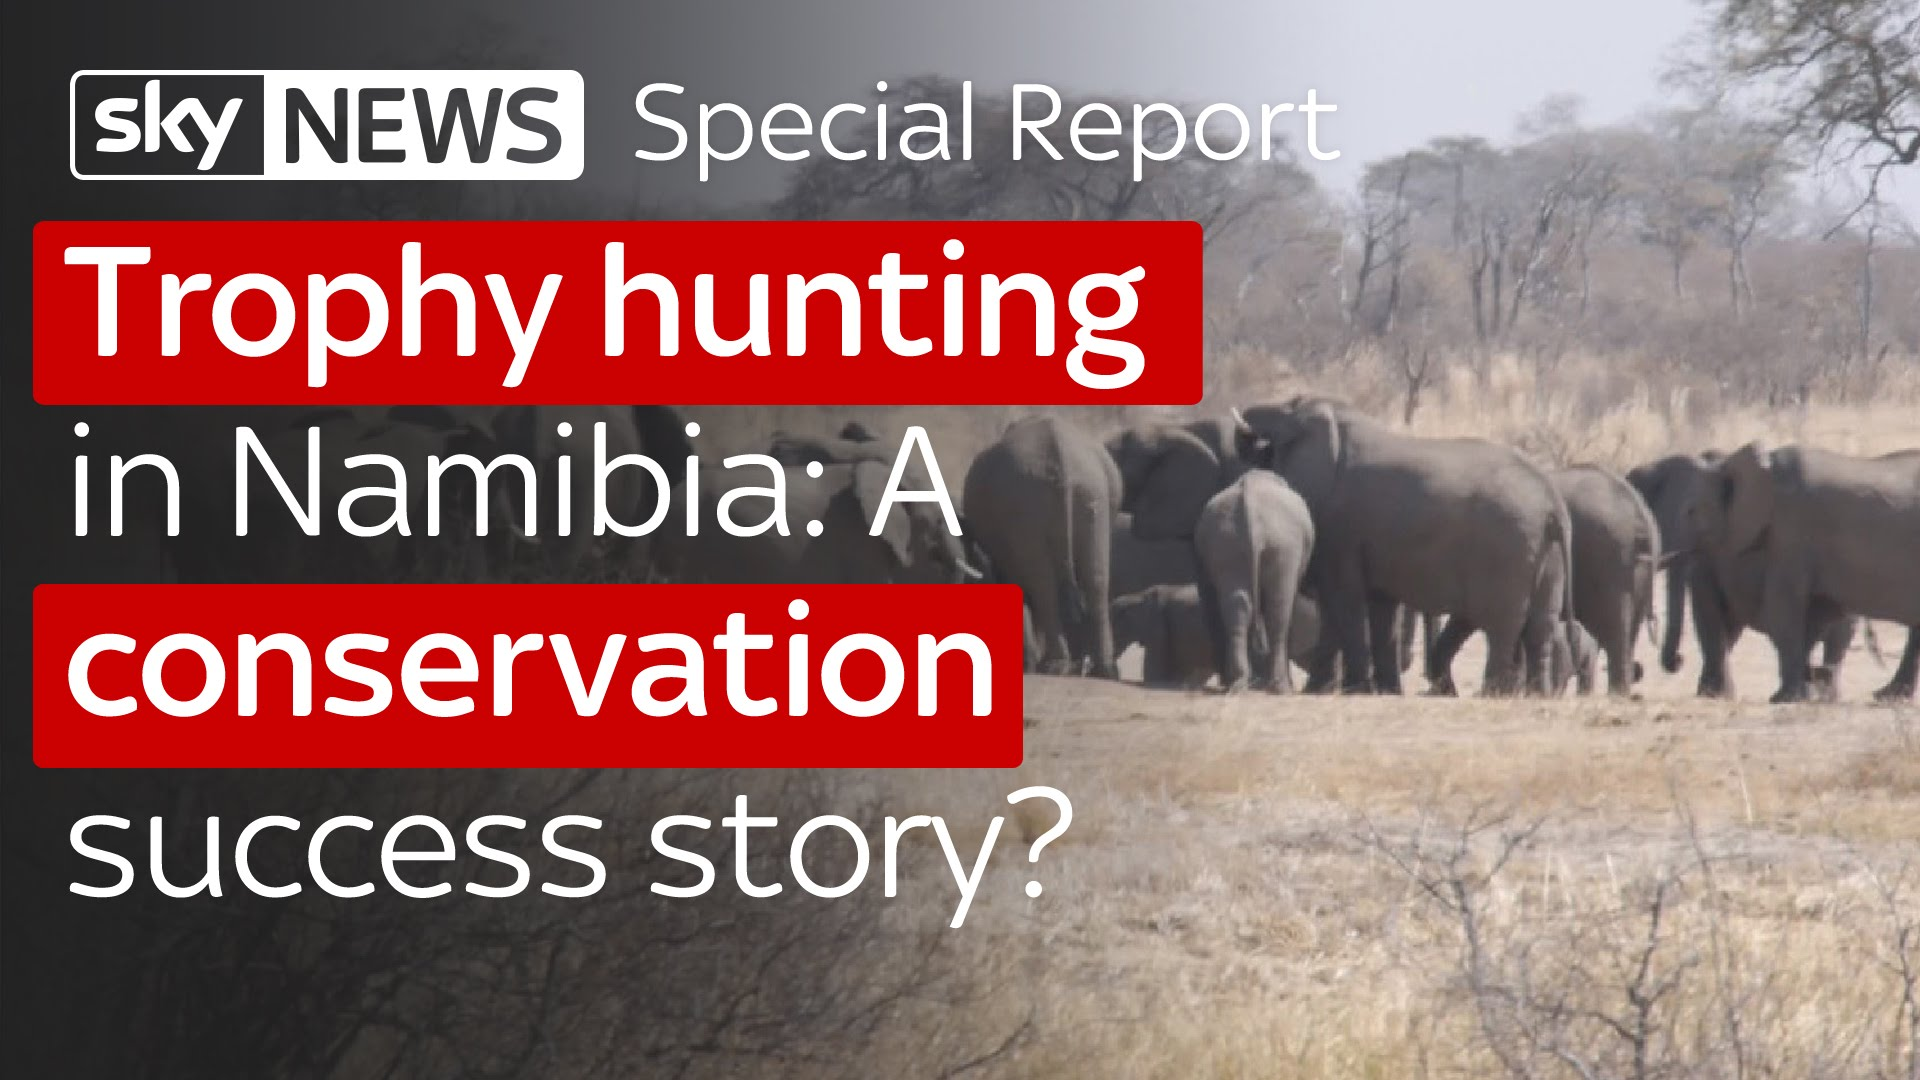 Trophy hunting in Namibia: A conservation success story? 8